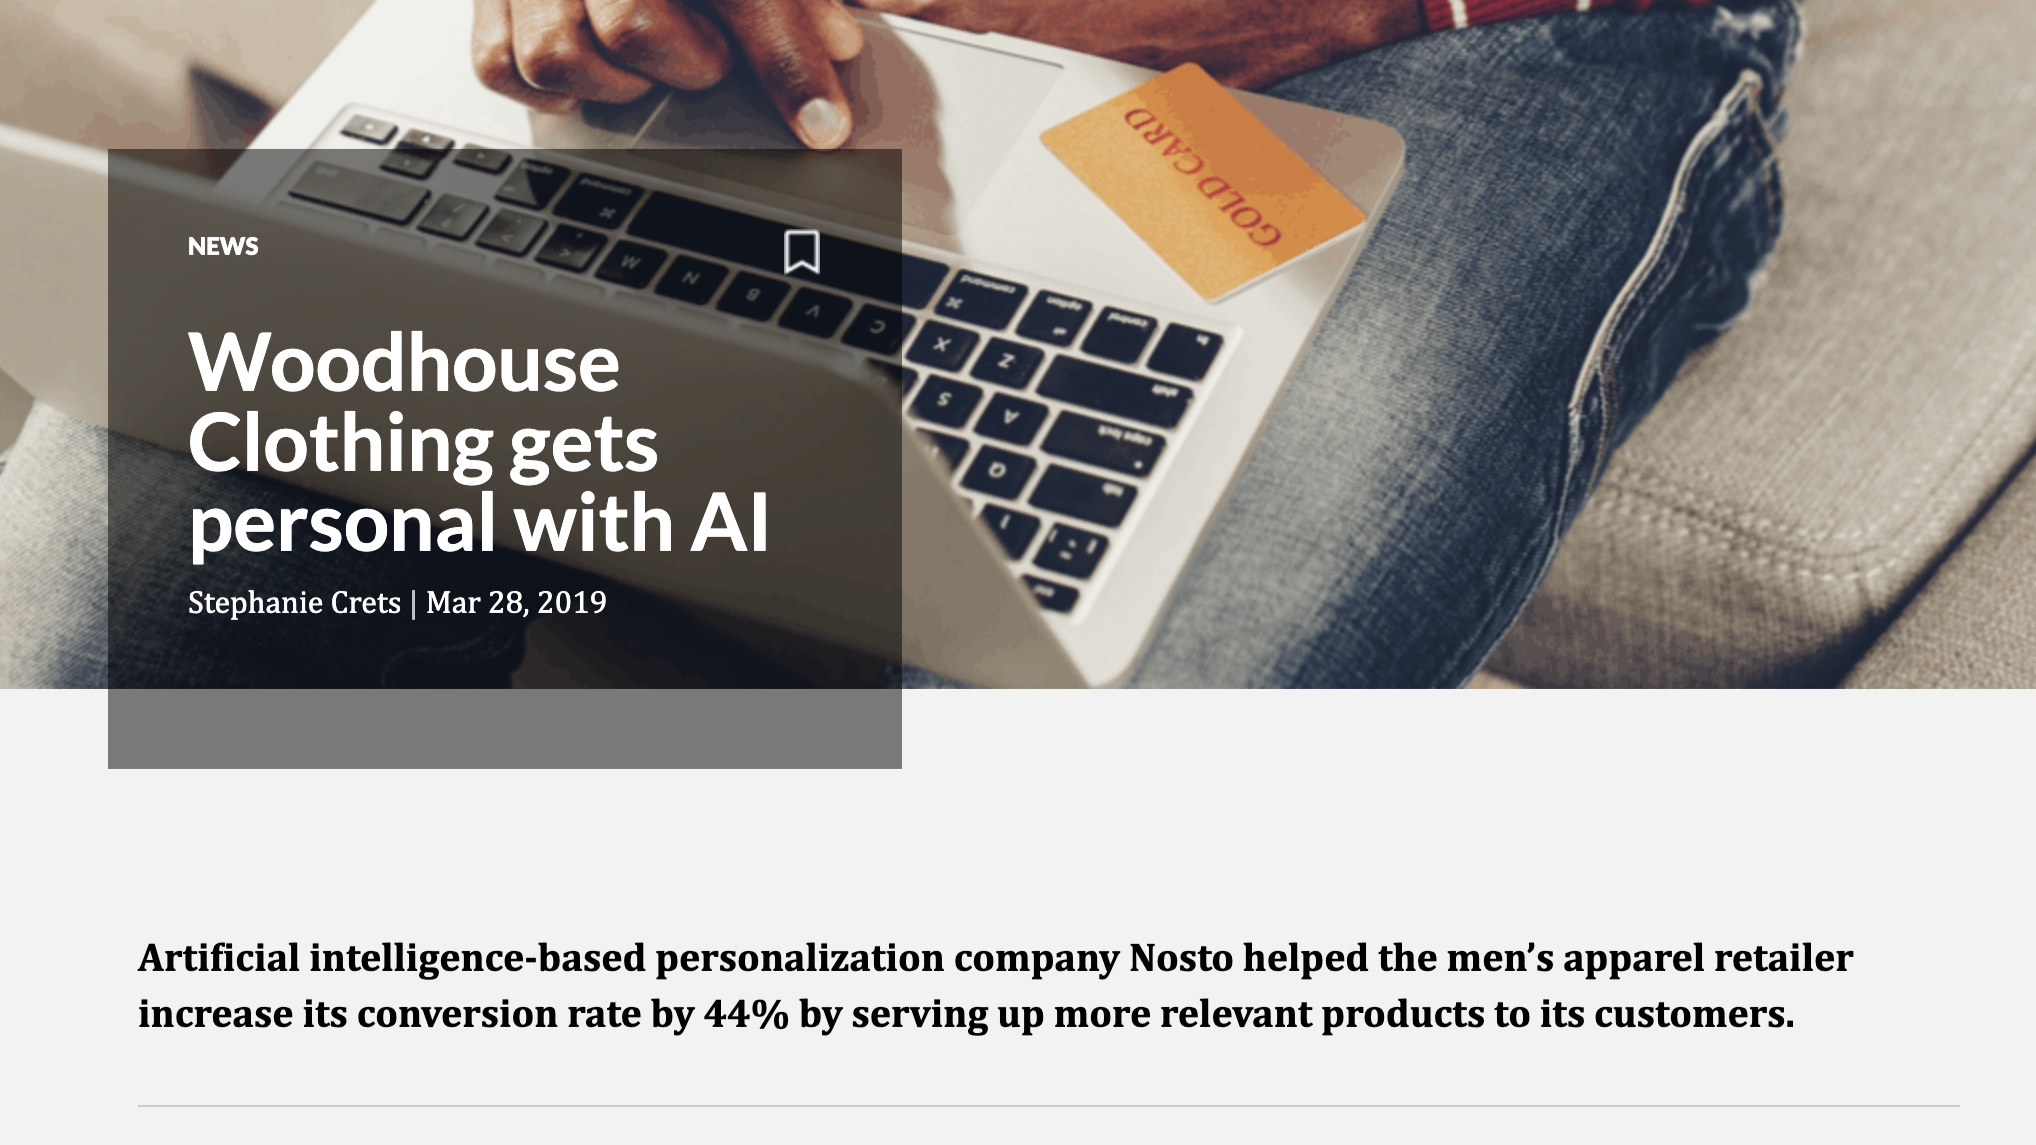 Digital Commerce 360 - Woodhouse clothing gets personal with AI